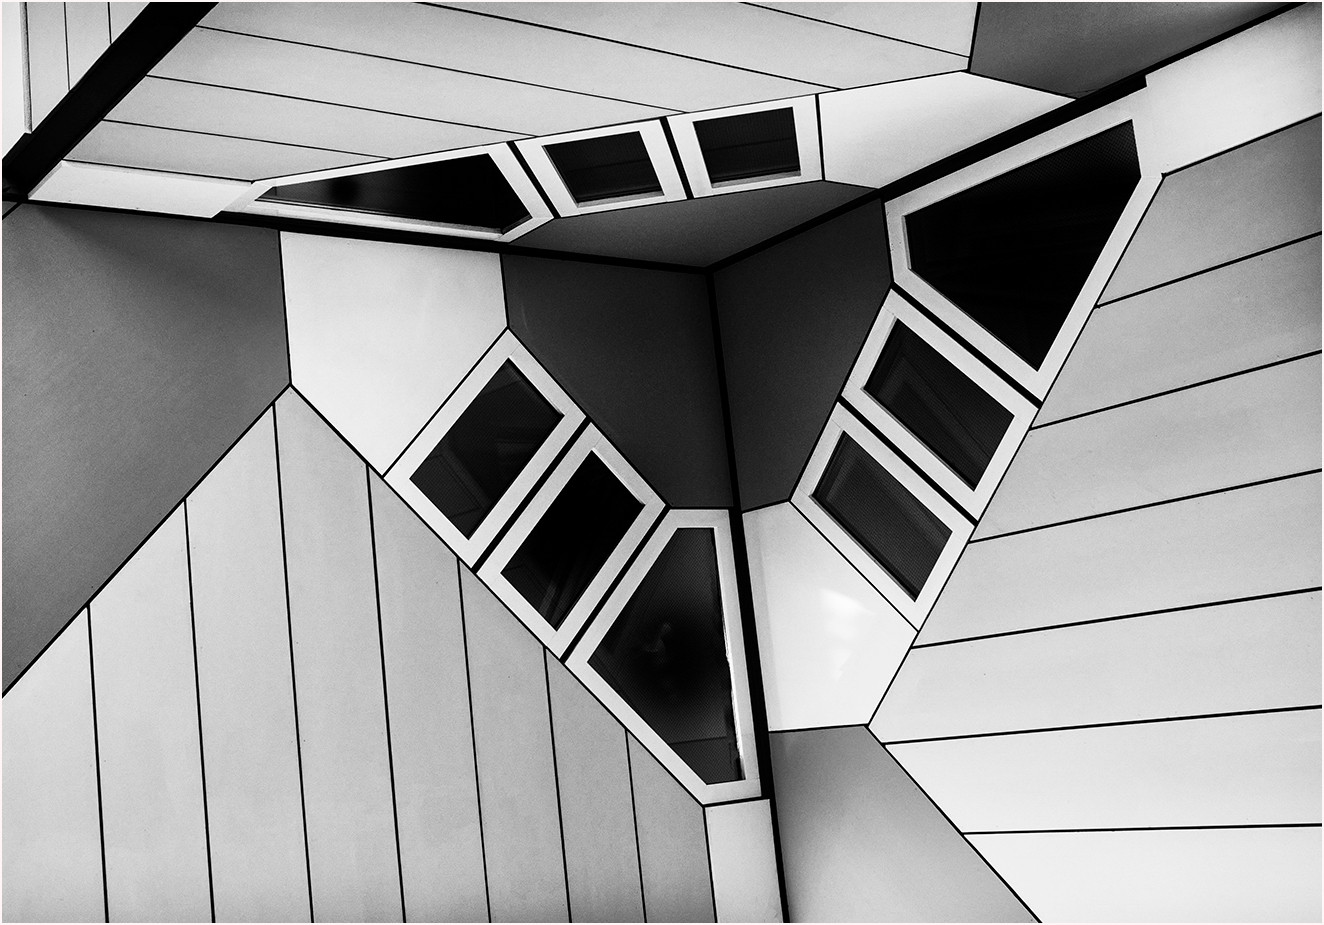 'Building Detail' by Ray Magill (10 marks)